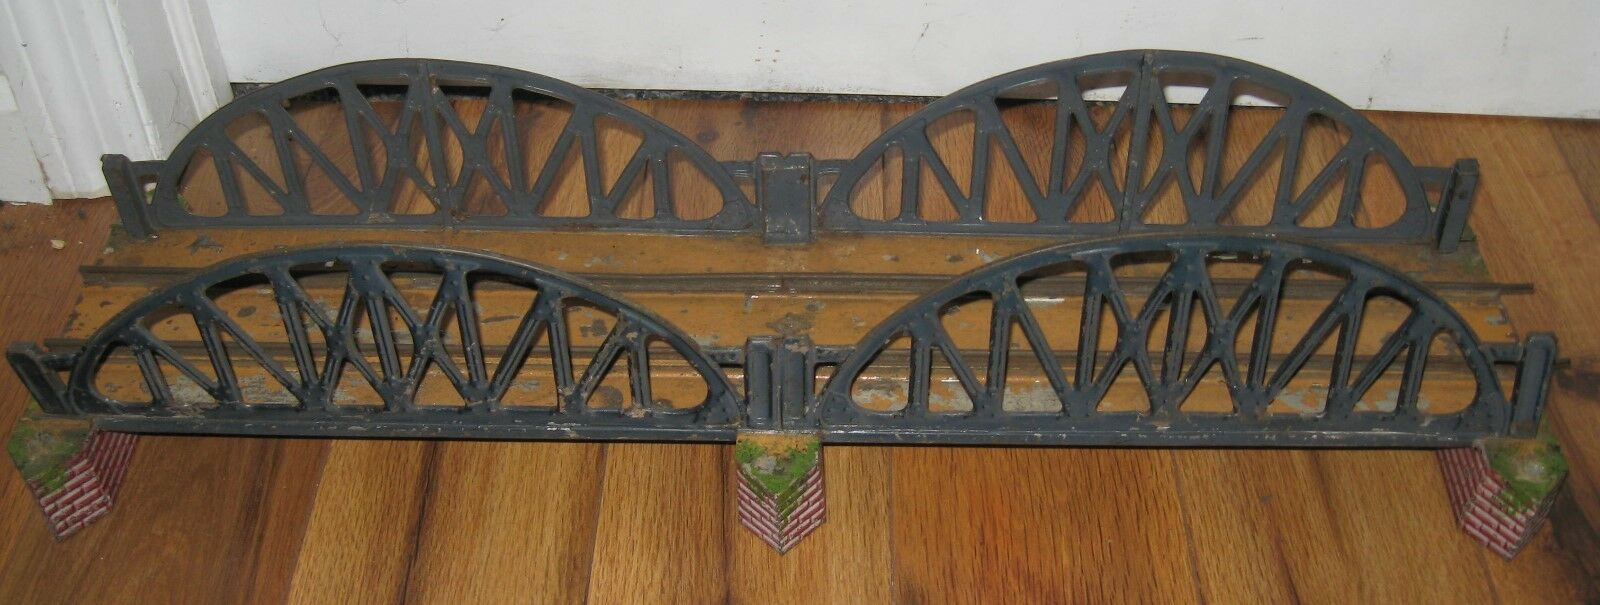 BING GBN LARGE DOUBLE SPAN 1 GAUGE BRIDGE TIN RARE PREWAR ANTIQUE Marklin Vtg